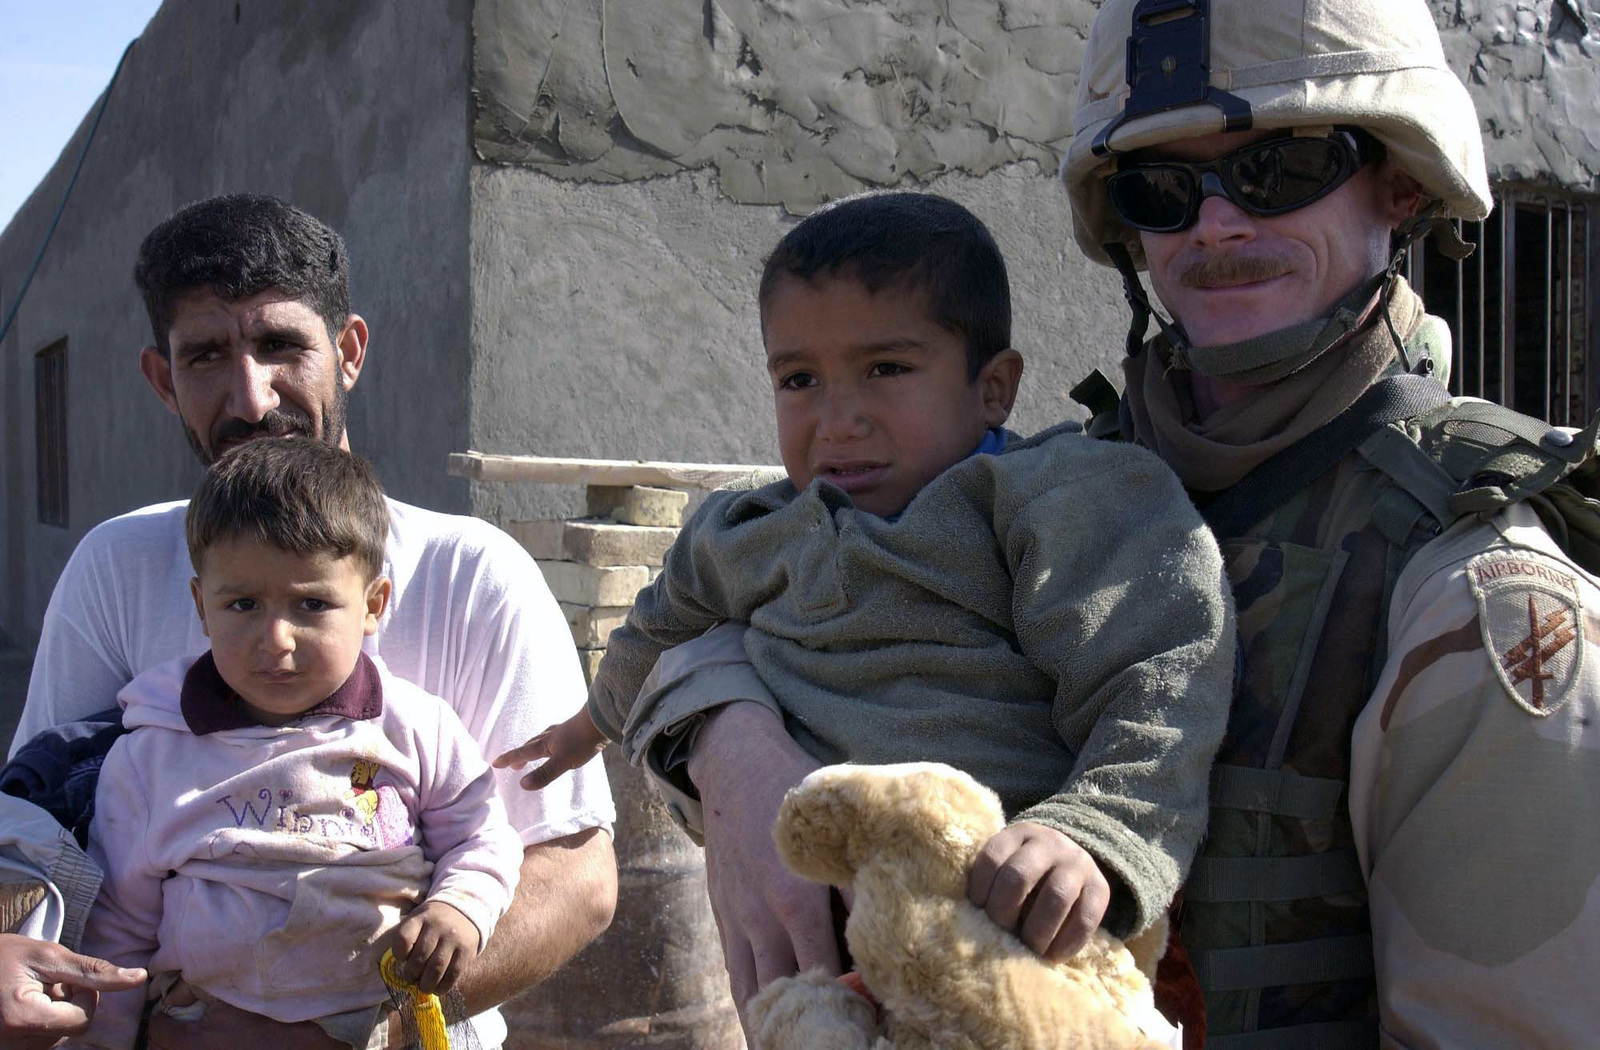 U.S. Army 350th Psychological Operations Company SGT. Eugene Thomas poses for a photograph with an Iraqi family near Logistics Support Area Anaconda, Iraq, on 26 Jan. 2005, during Operation Iraqi Freedom.  (U.S. Air Force PHOTO by AIRMAN 1ST Class Kurt Gibbons III) (Released)v